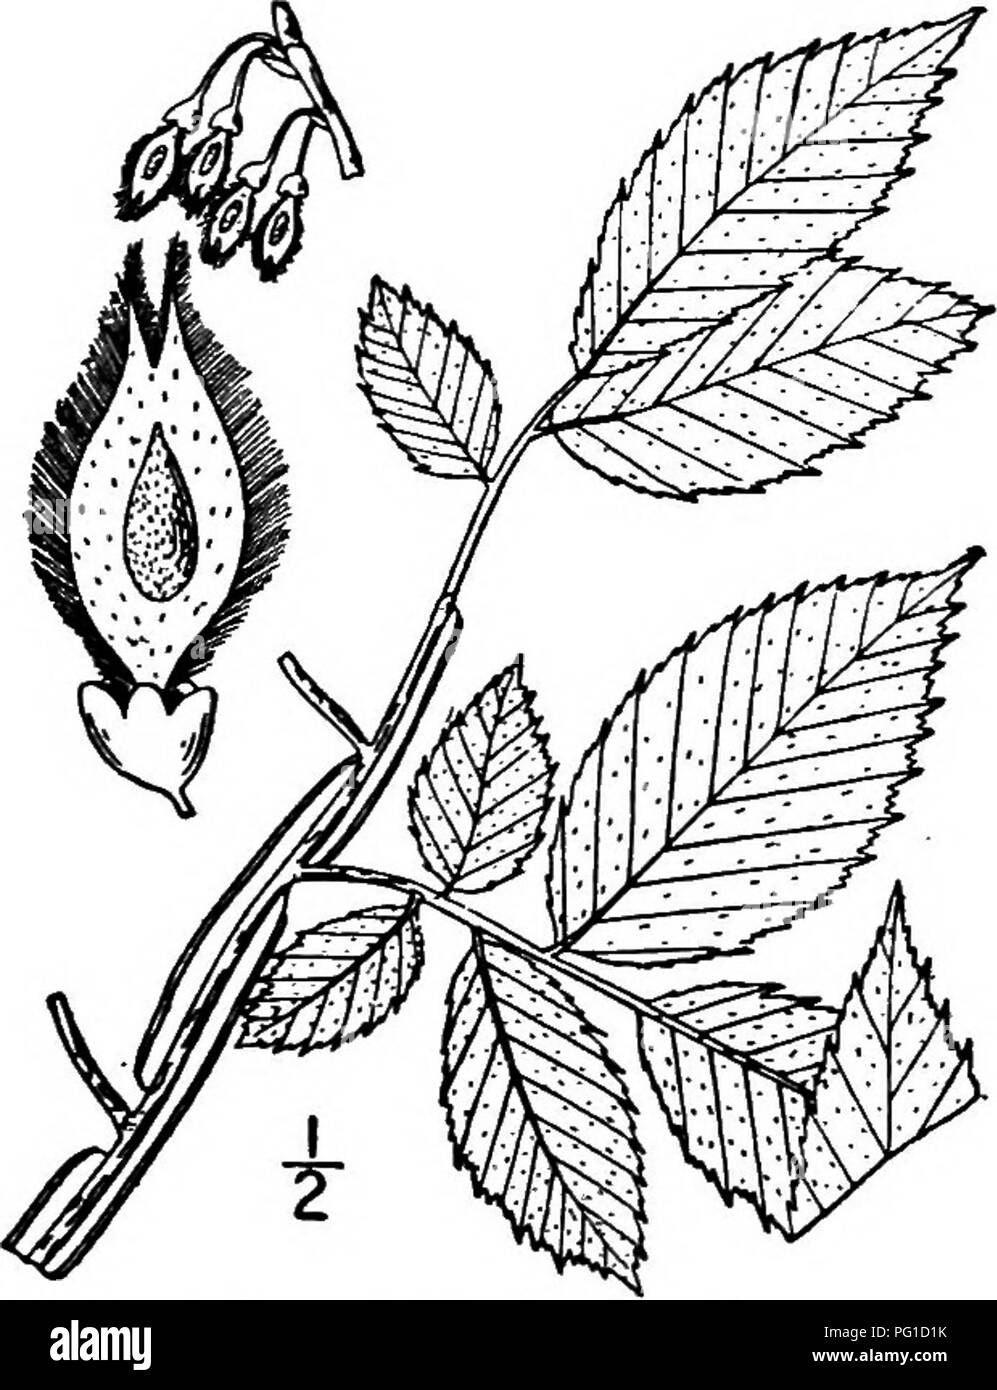 """. North American trees : being descriptions and illustrations of the trees growing independently of cultivation in North America, north of Mexico and the West Indies . Trees. 348 The Elms The name """"winged"""" elm is with reference to the plentiful development of corky wings on its branches; it is also commonly known as Wahoo. The bark is thin, shallowly fissured, scaly and light reddish brown. The young twigs are very finely and sparingly hairy, or quite smooth, and usually develop corky wings which are long-persistent. The leaves are oblong to oblong-ovate or oblong-lanceolate, sharp-  - Stock Image"""